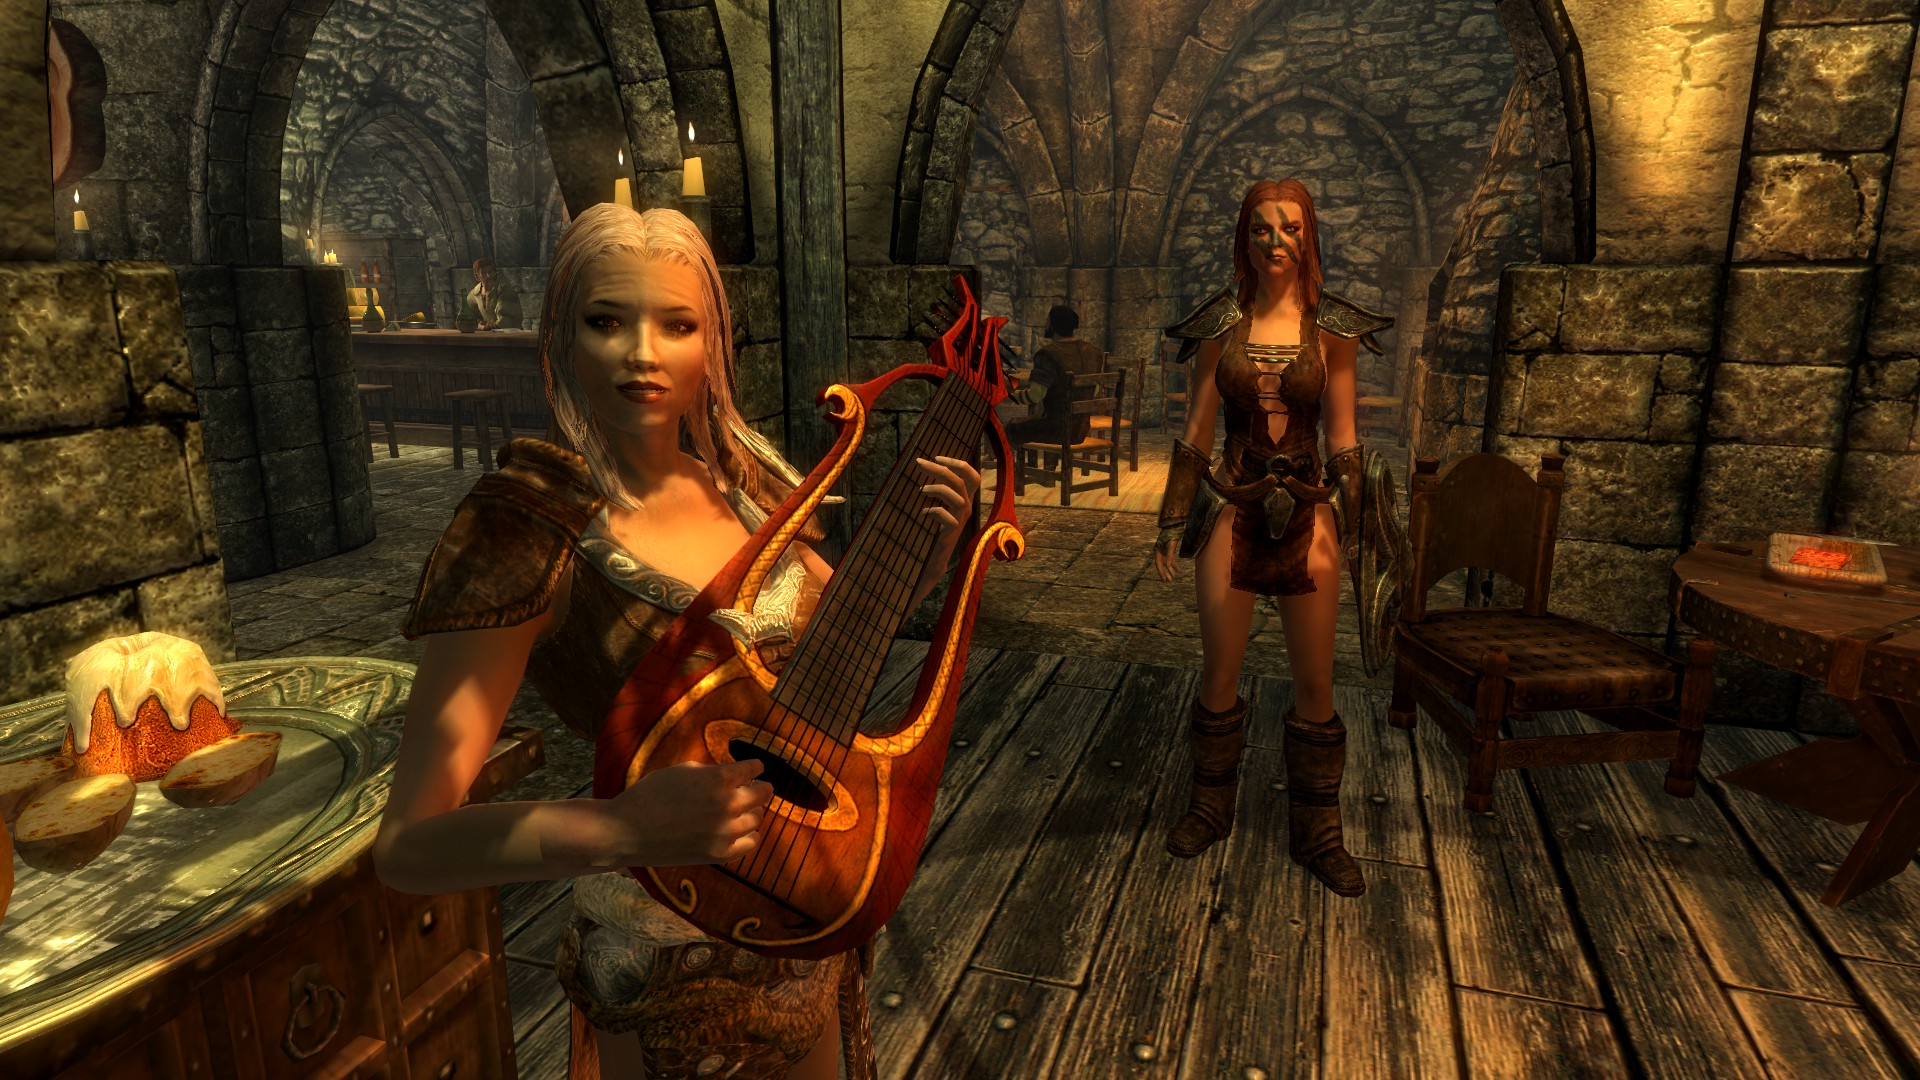 Skyrim: Little did I know, the player is unable to play instruments of any kind.